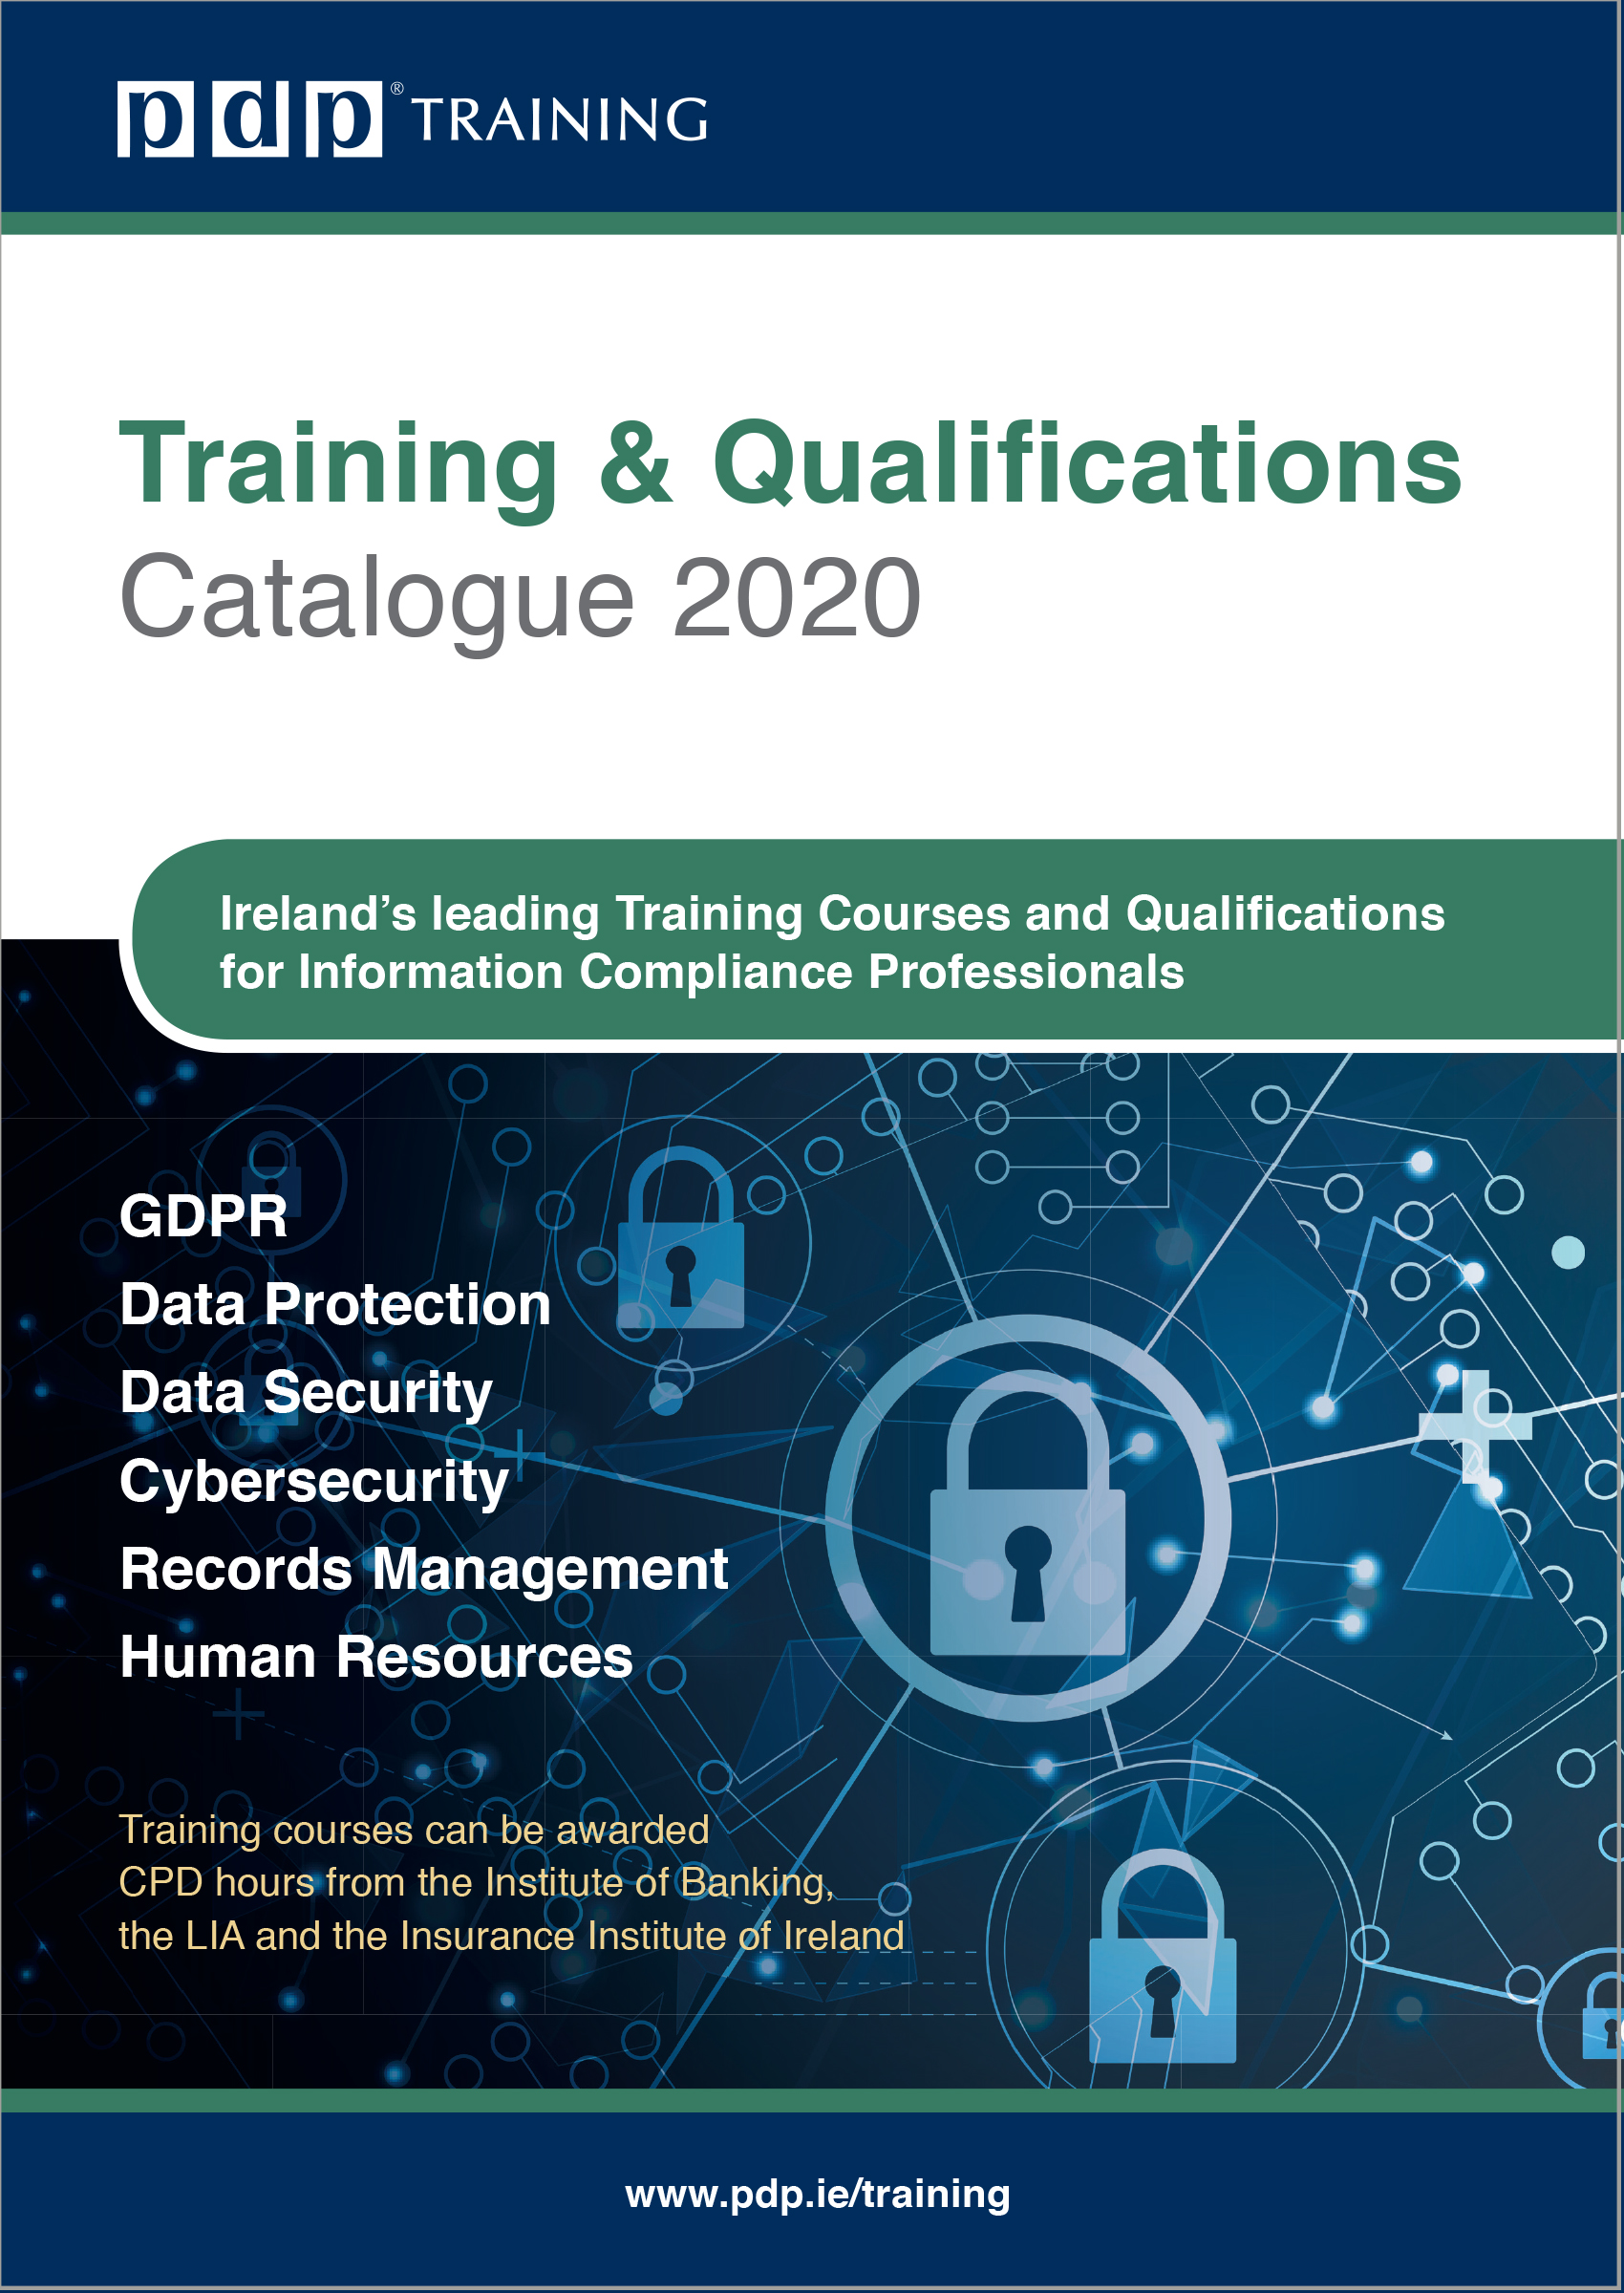 PDP Training Catalogue 2020